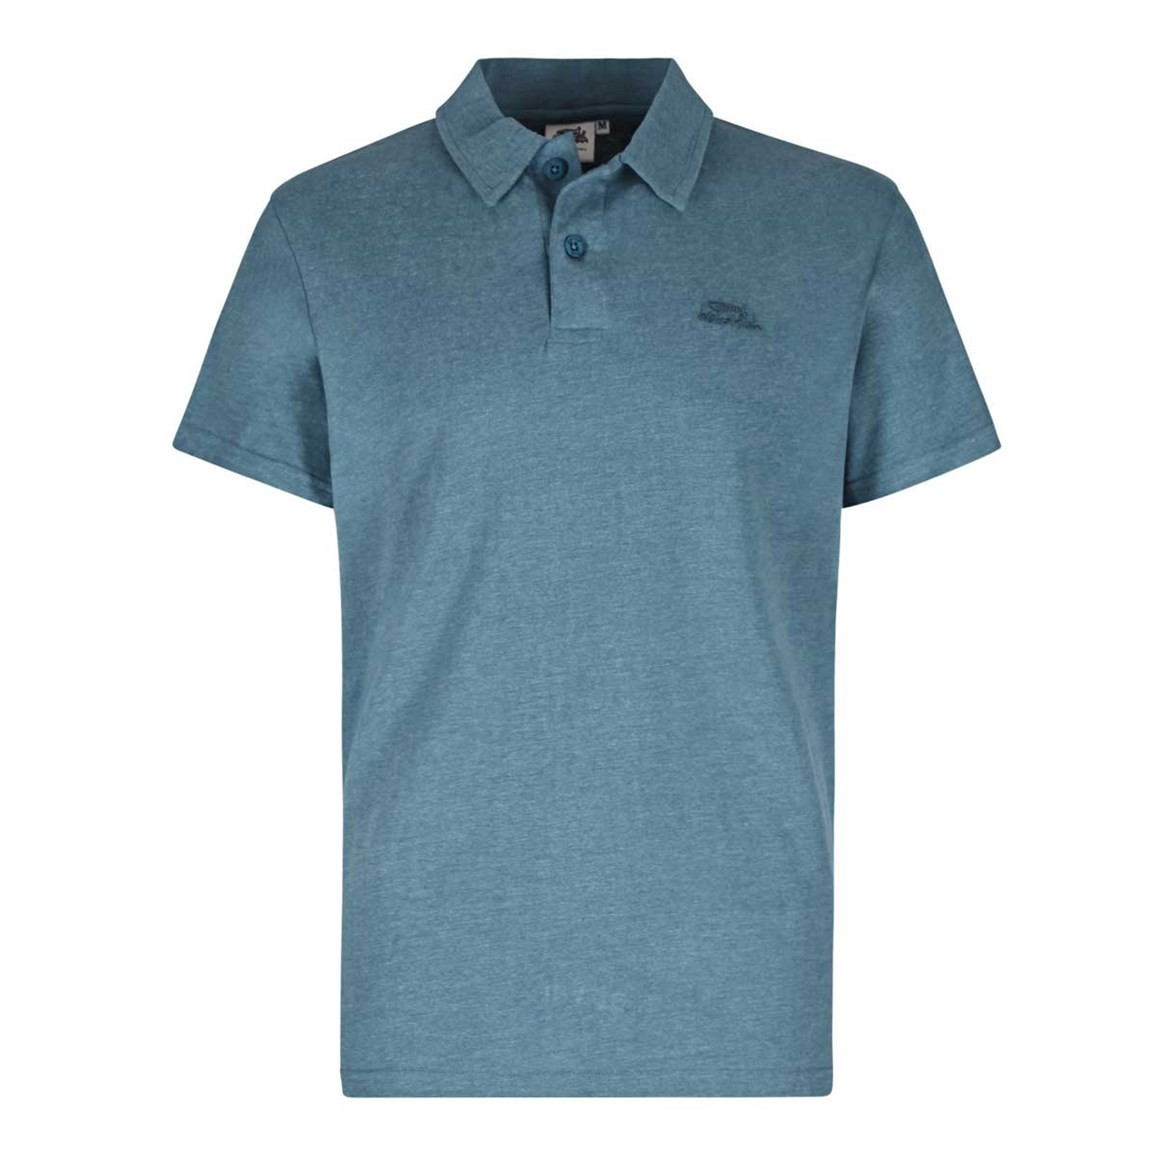 Image of Weird Fish Andre Classic Polo Shirt China Blue Size S